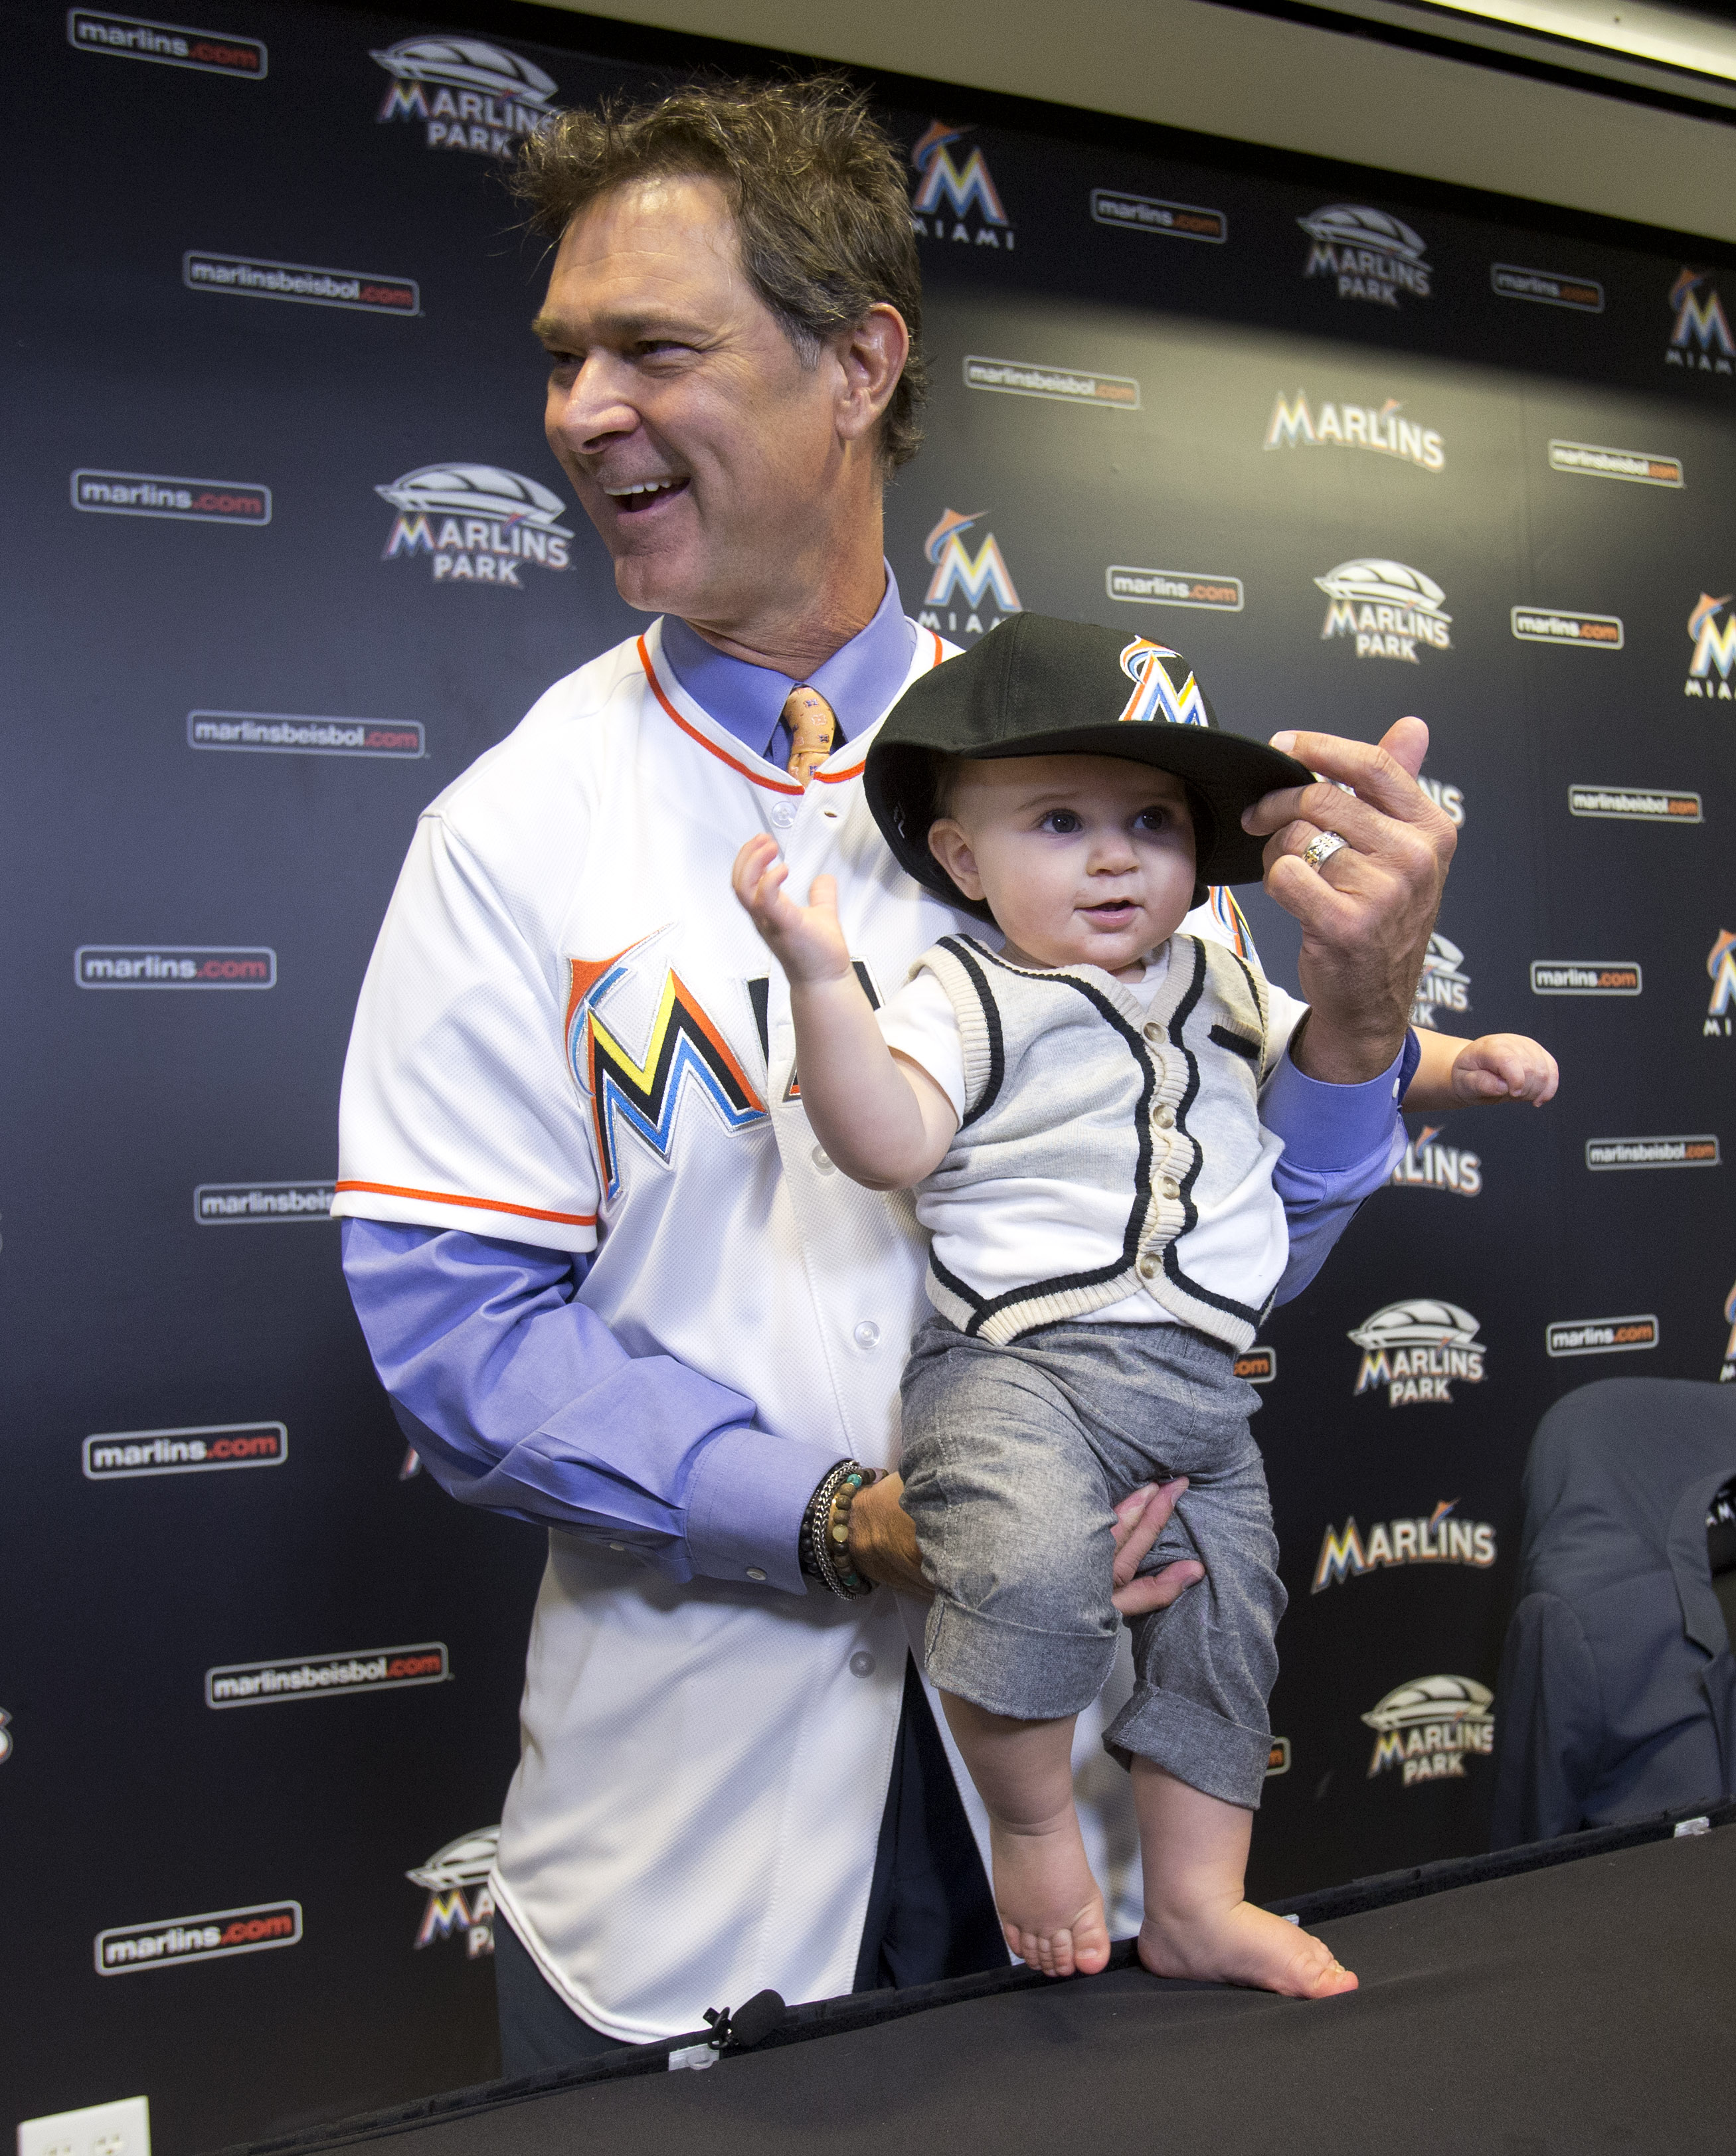 Don Mattingly puts a Miami Marlins baseball hat on his son Louie after being introduced as the new Marlins manager, Monday, Nov. 2, 2015, in Miami. (AP Photo/Wilfredo Lee)